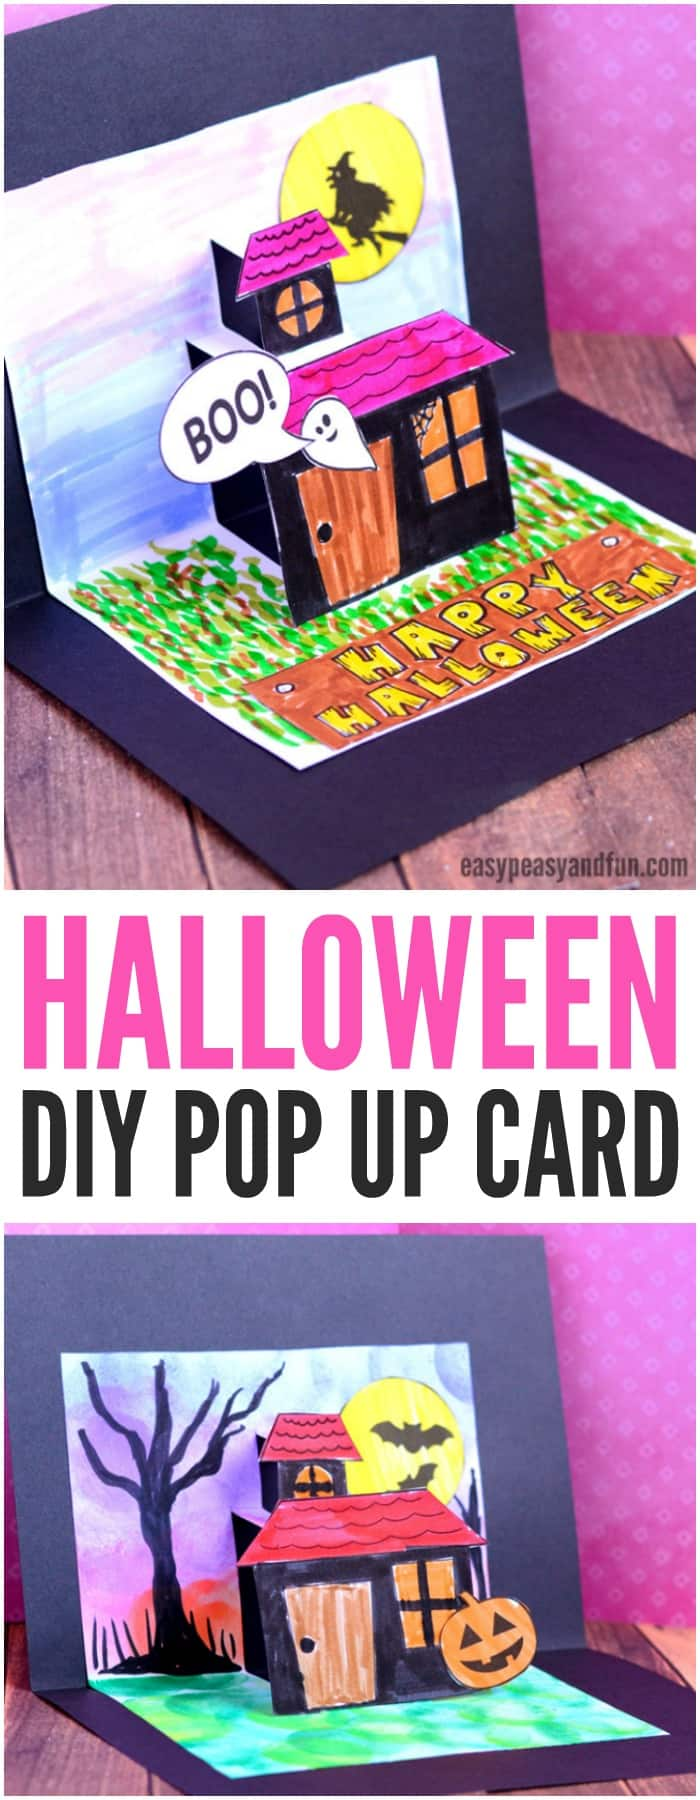 DIY Halloween pop up card template. Fun Halloween craft for kids to make at home or in classrooms.